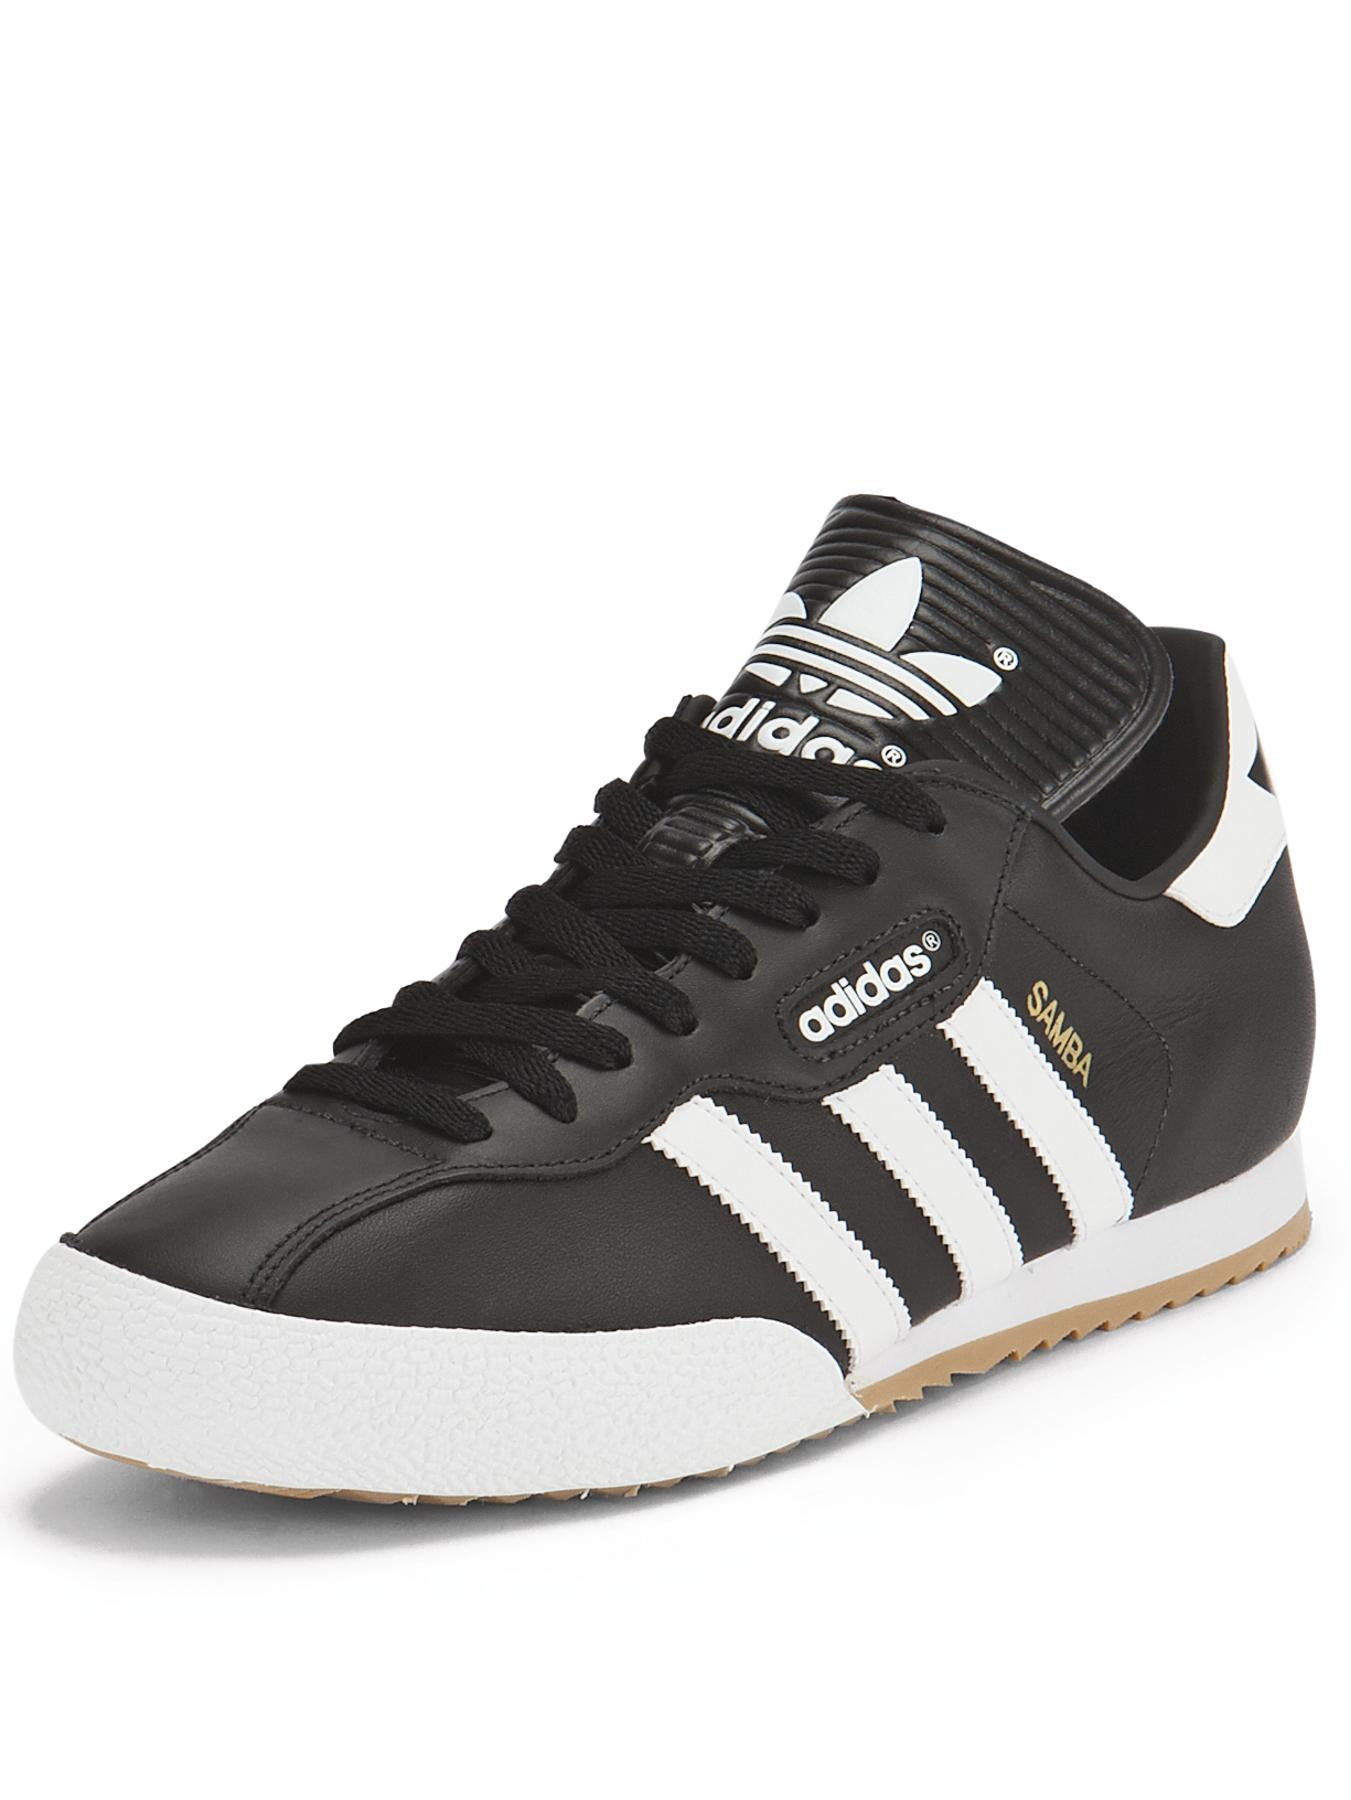 Samba Super Trainers, Black